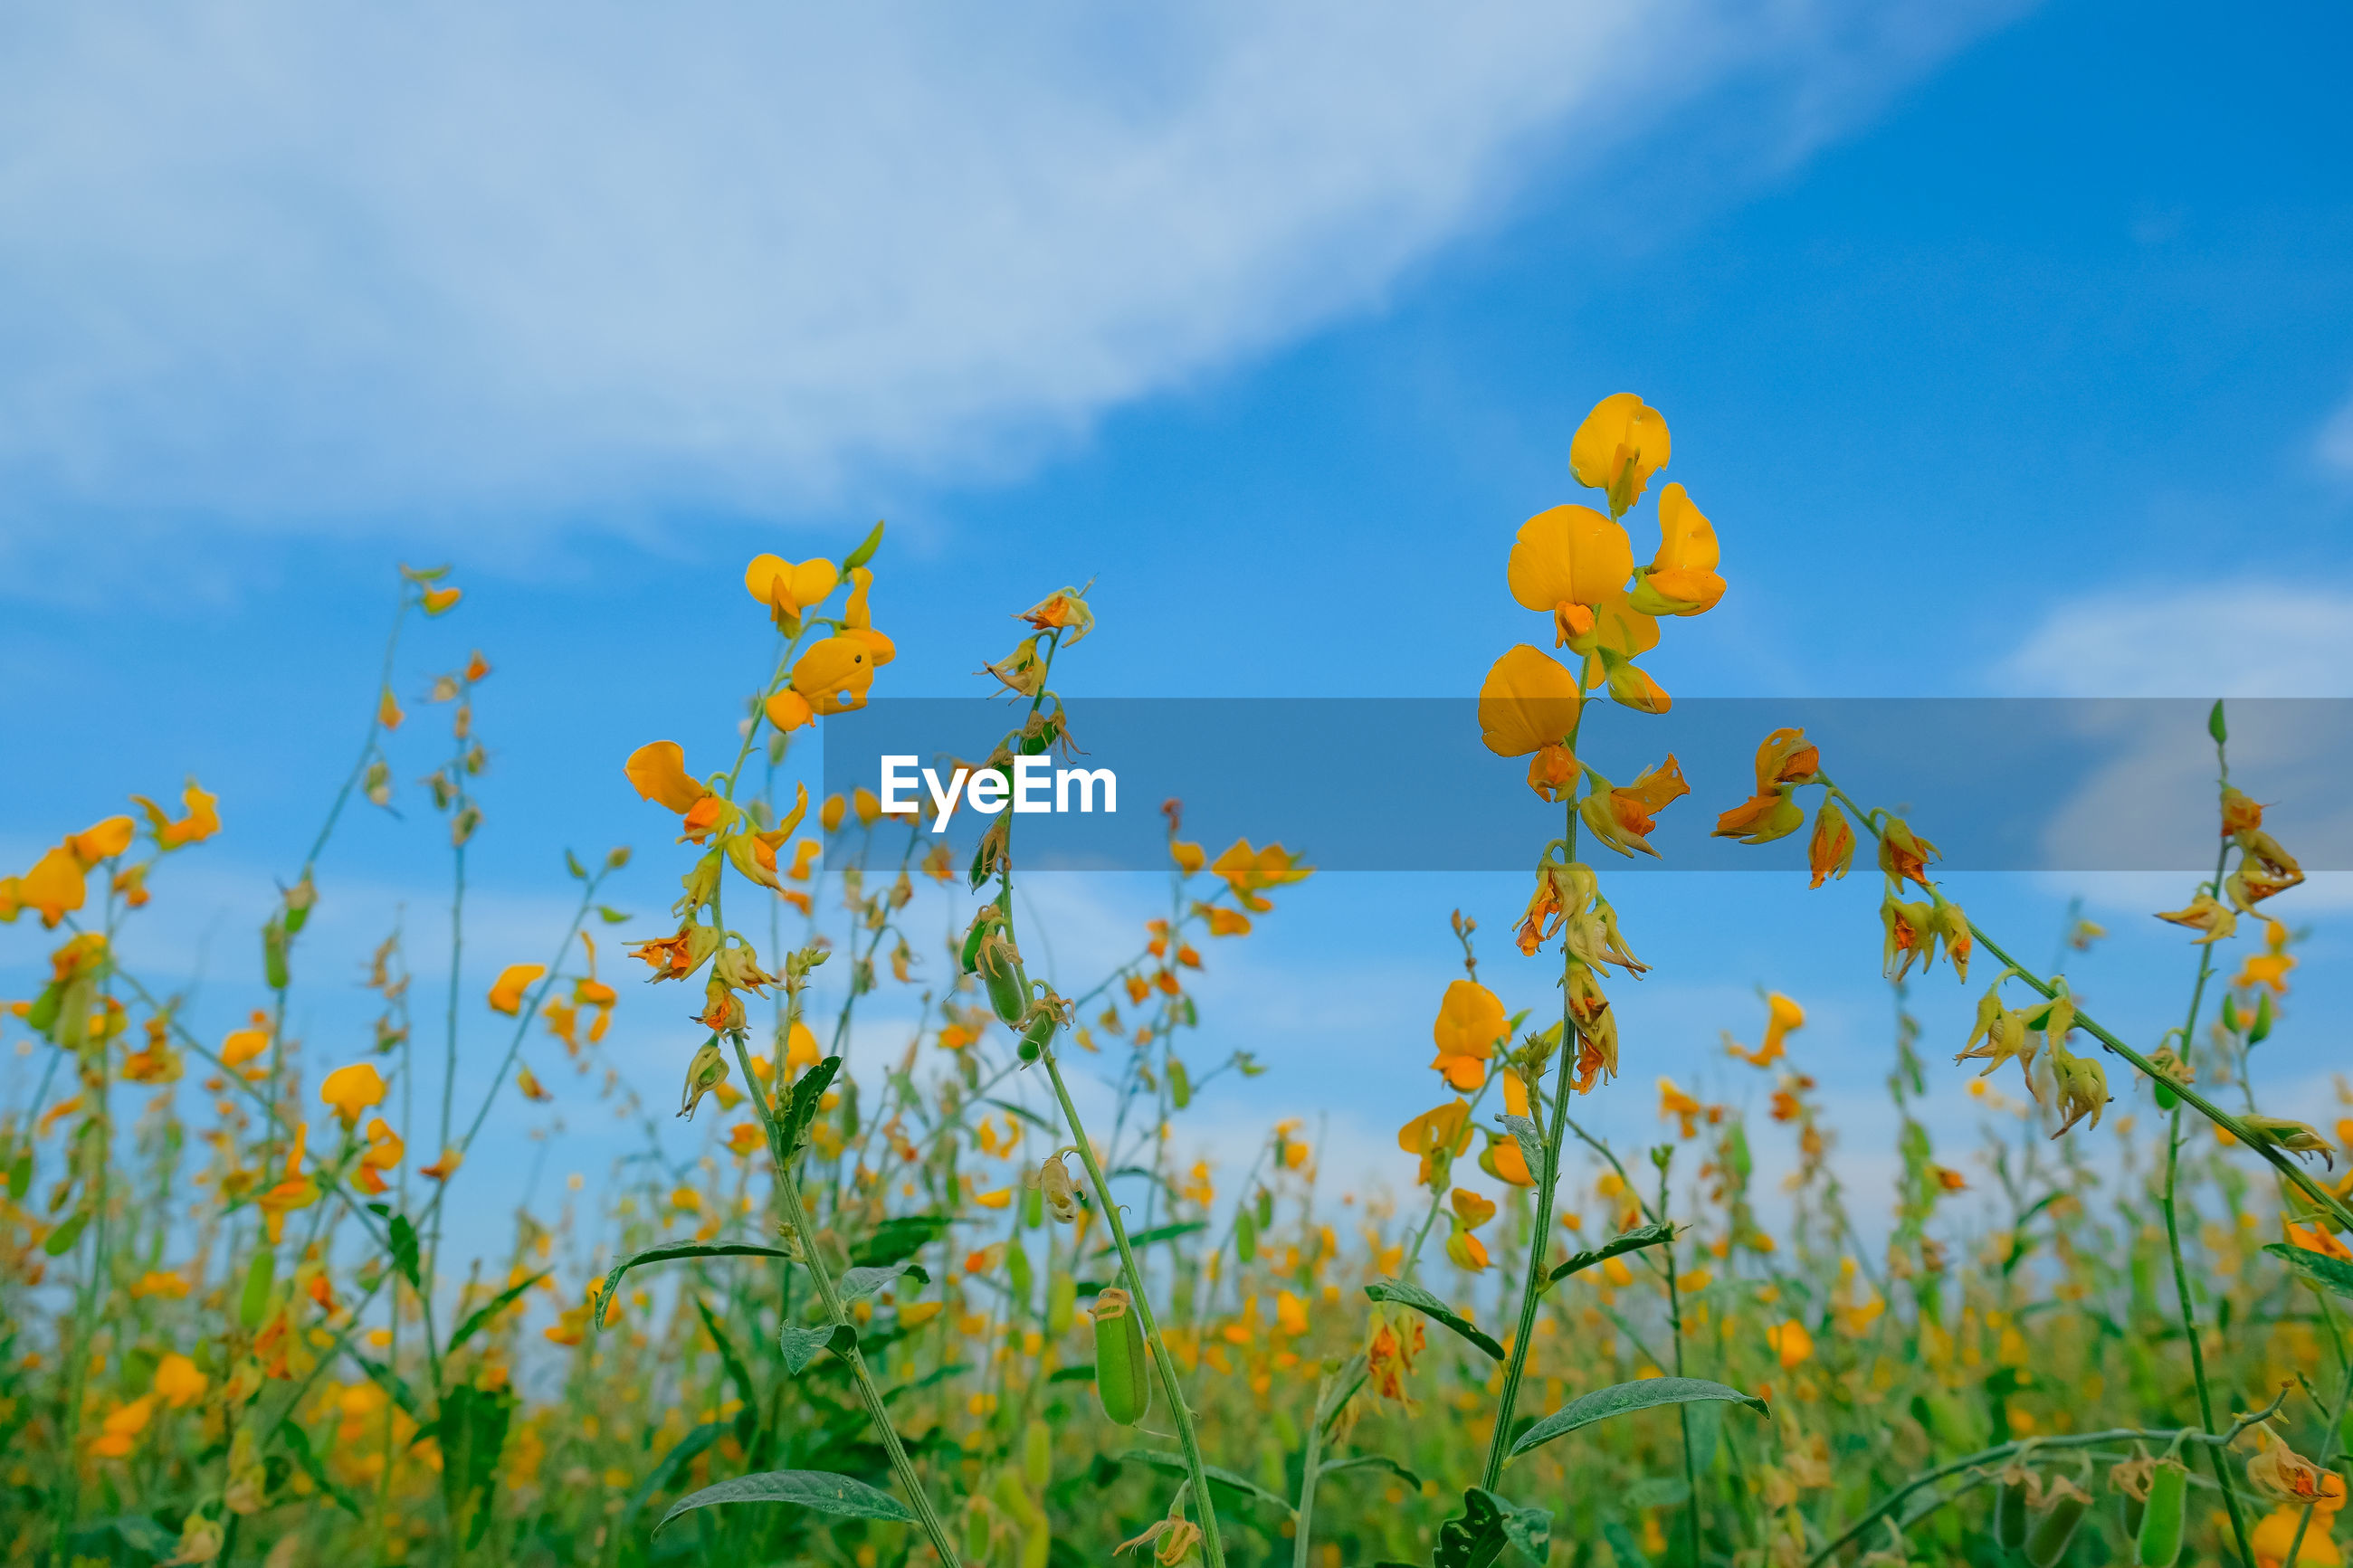 LOW ANGLE VIEW OF YELLOW FLOWERING PLANT ON FIELD AGAINST SKY